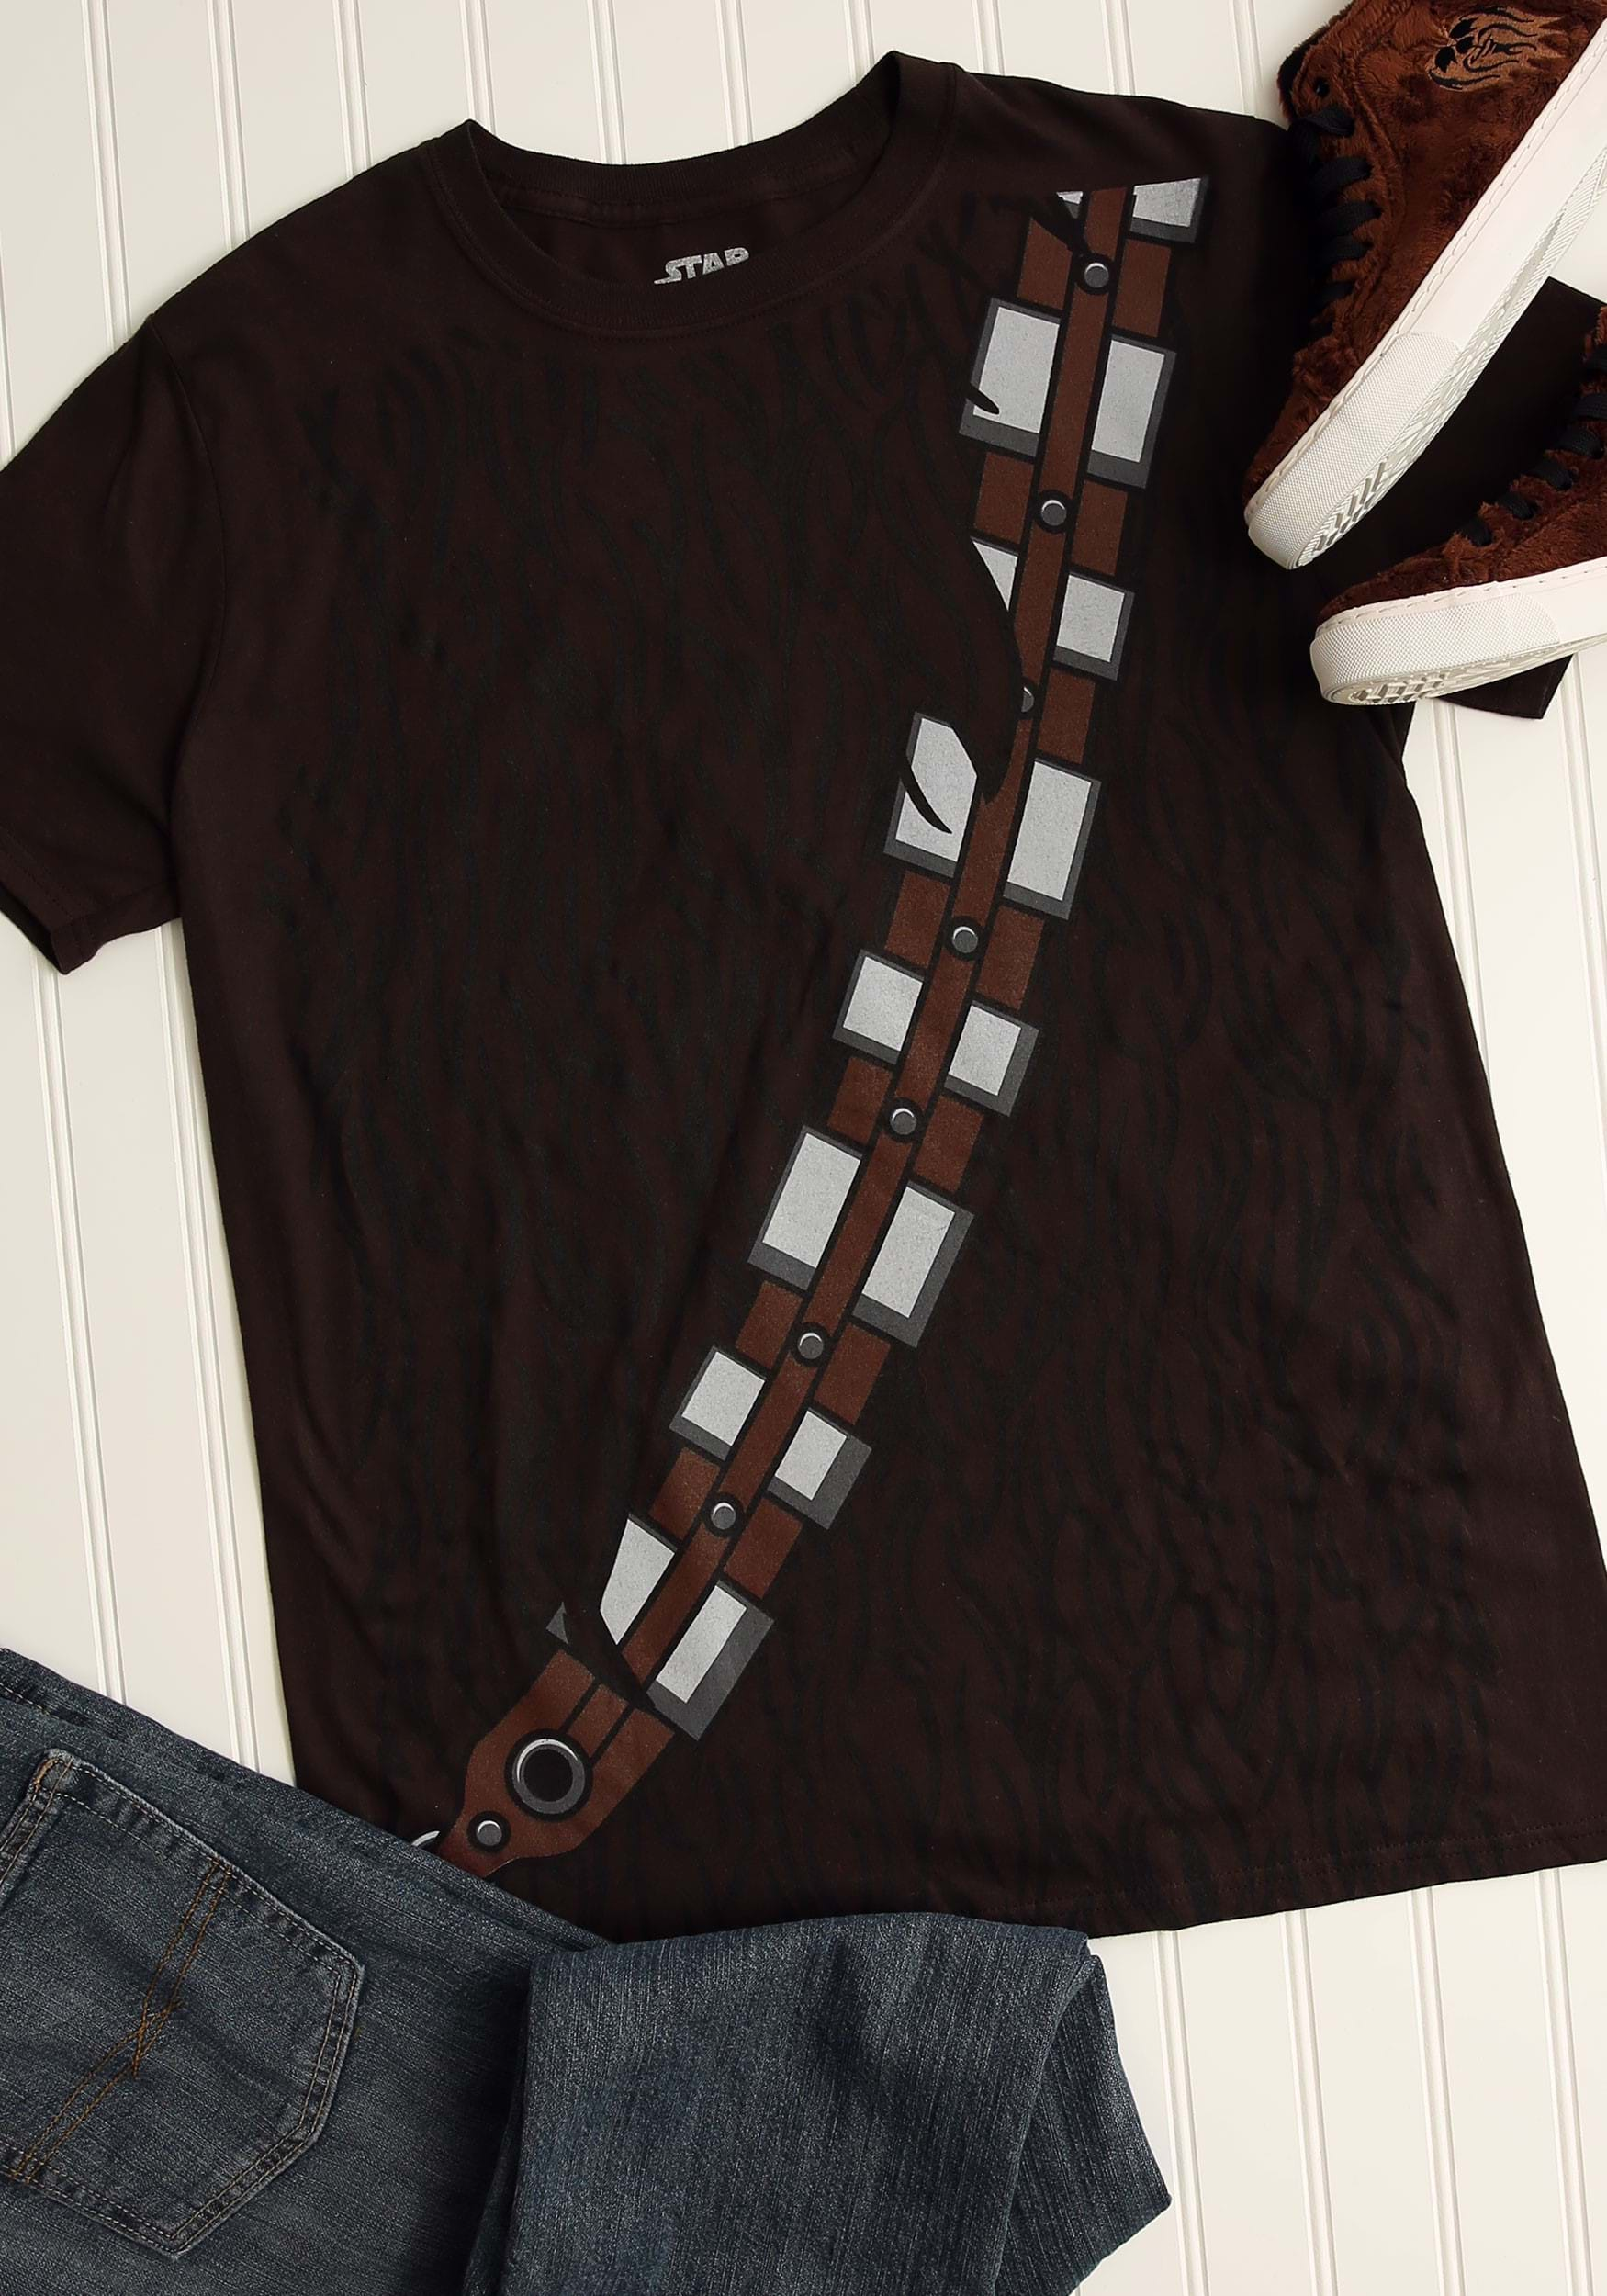 Mens i am chewbacca costume t shirt for Costume t shirts online